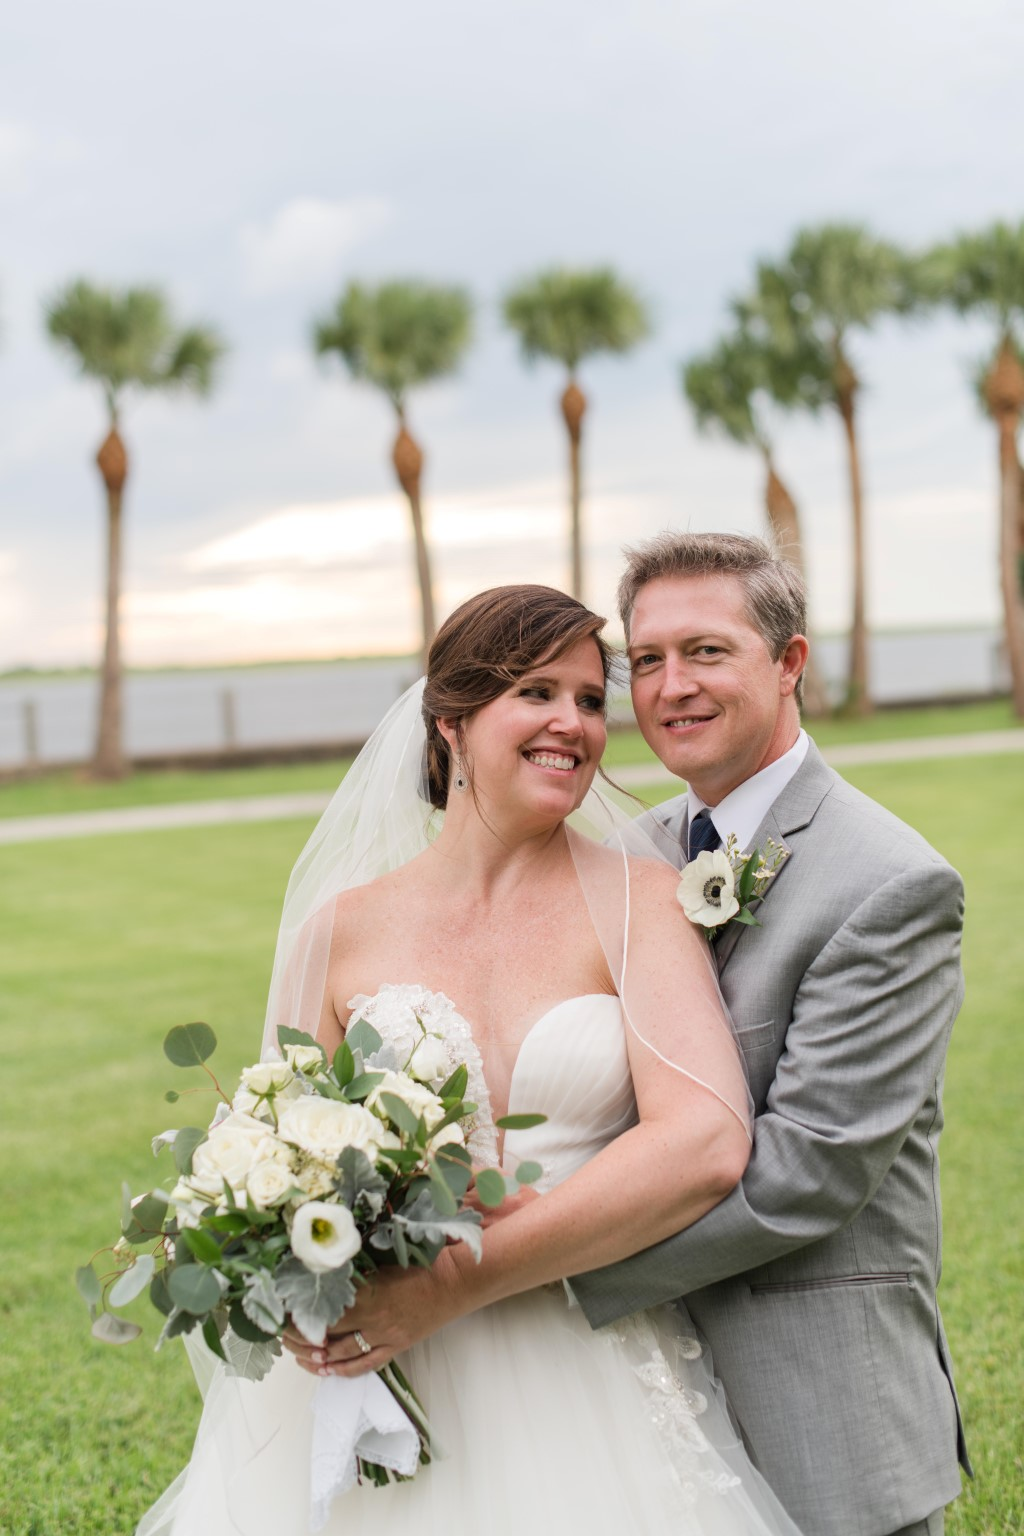 water inspired intimate wedding - Meredith Ryncarz Photography